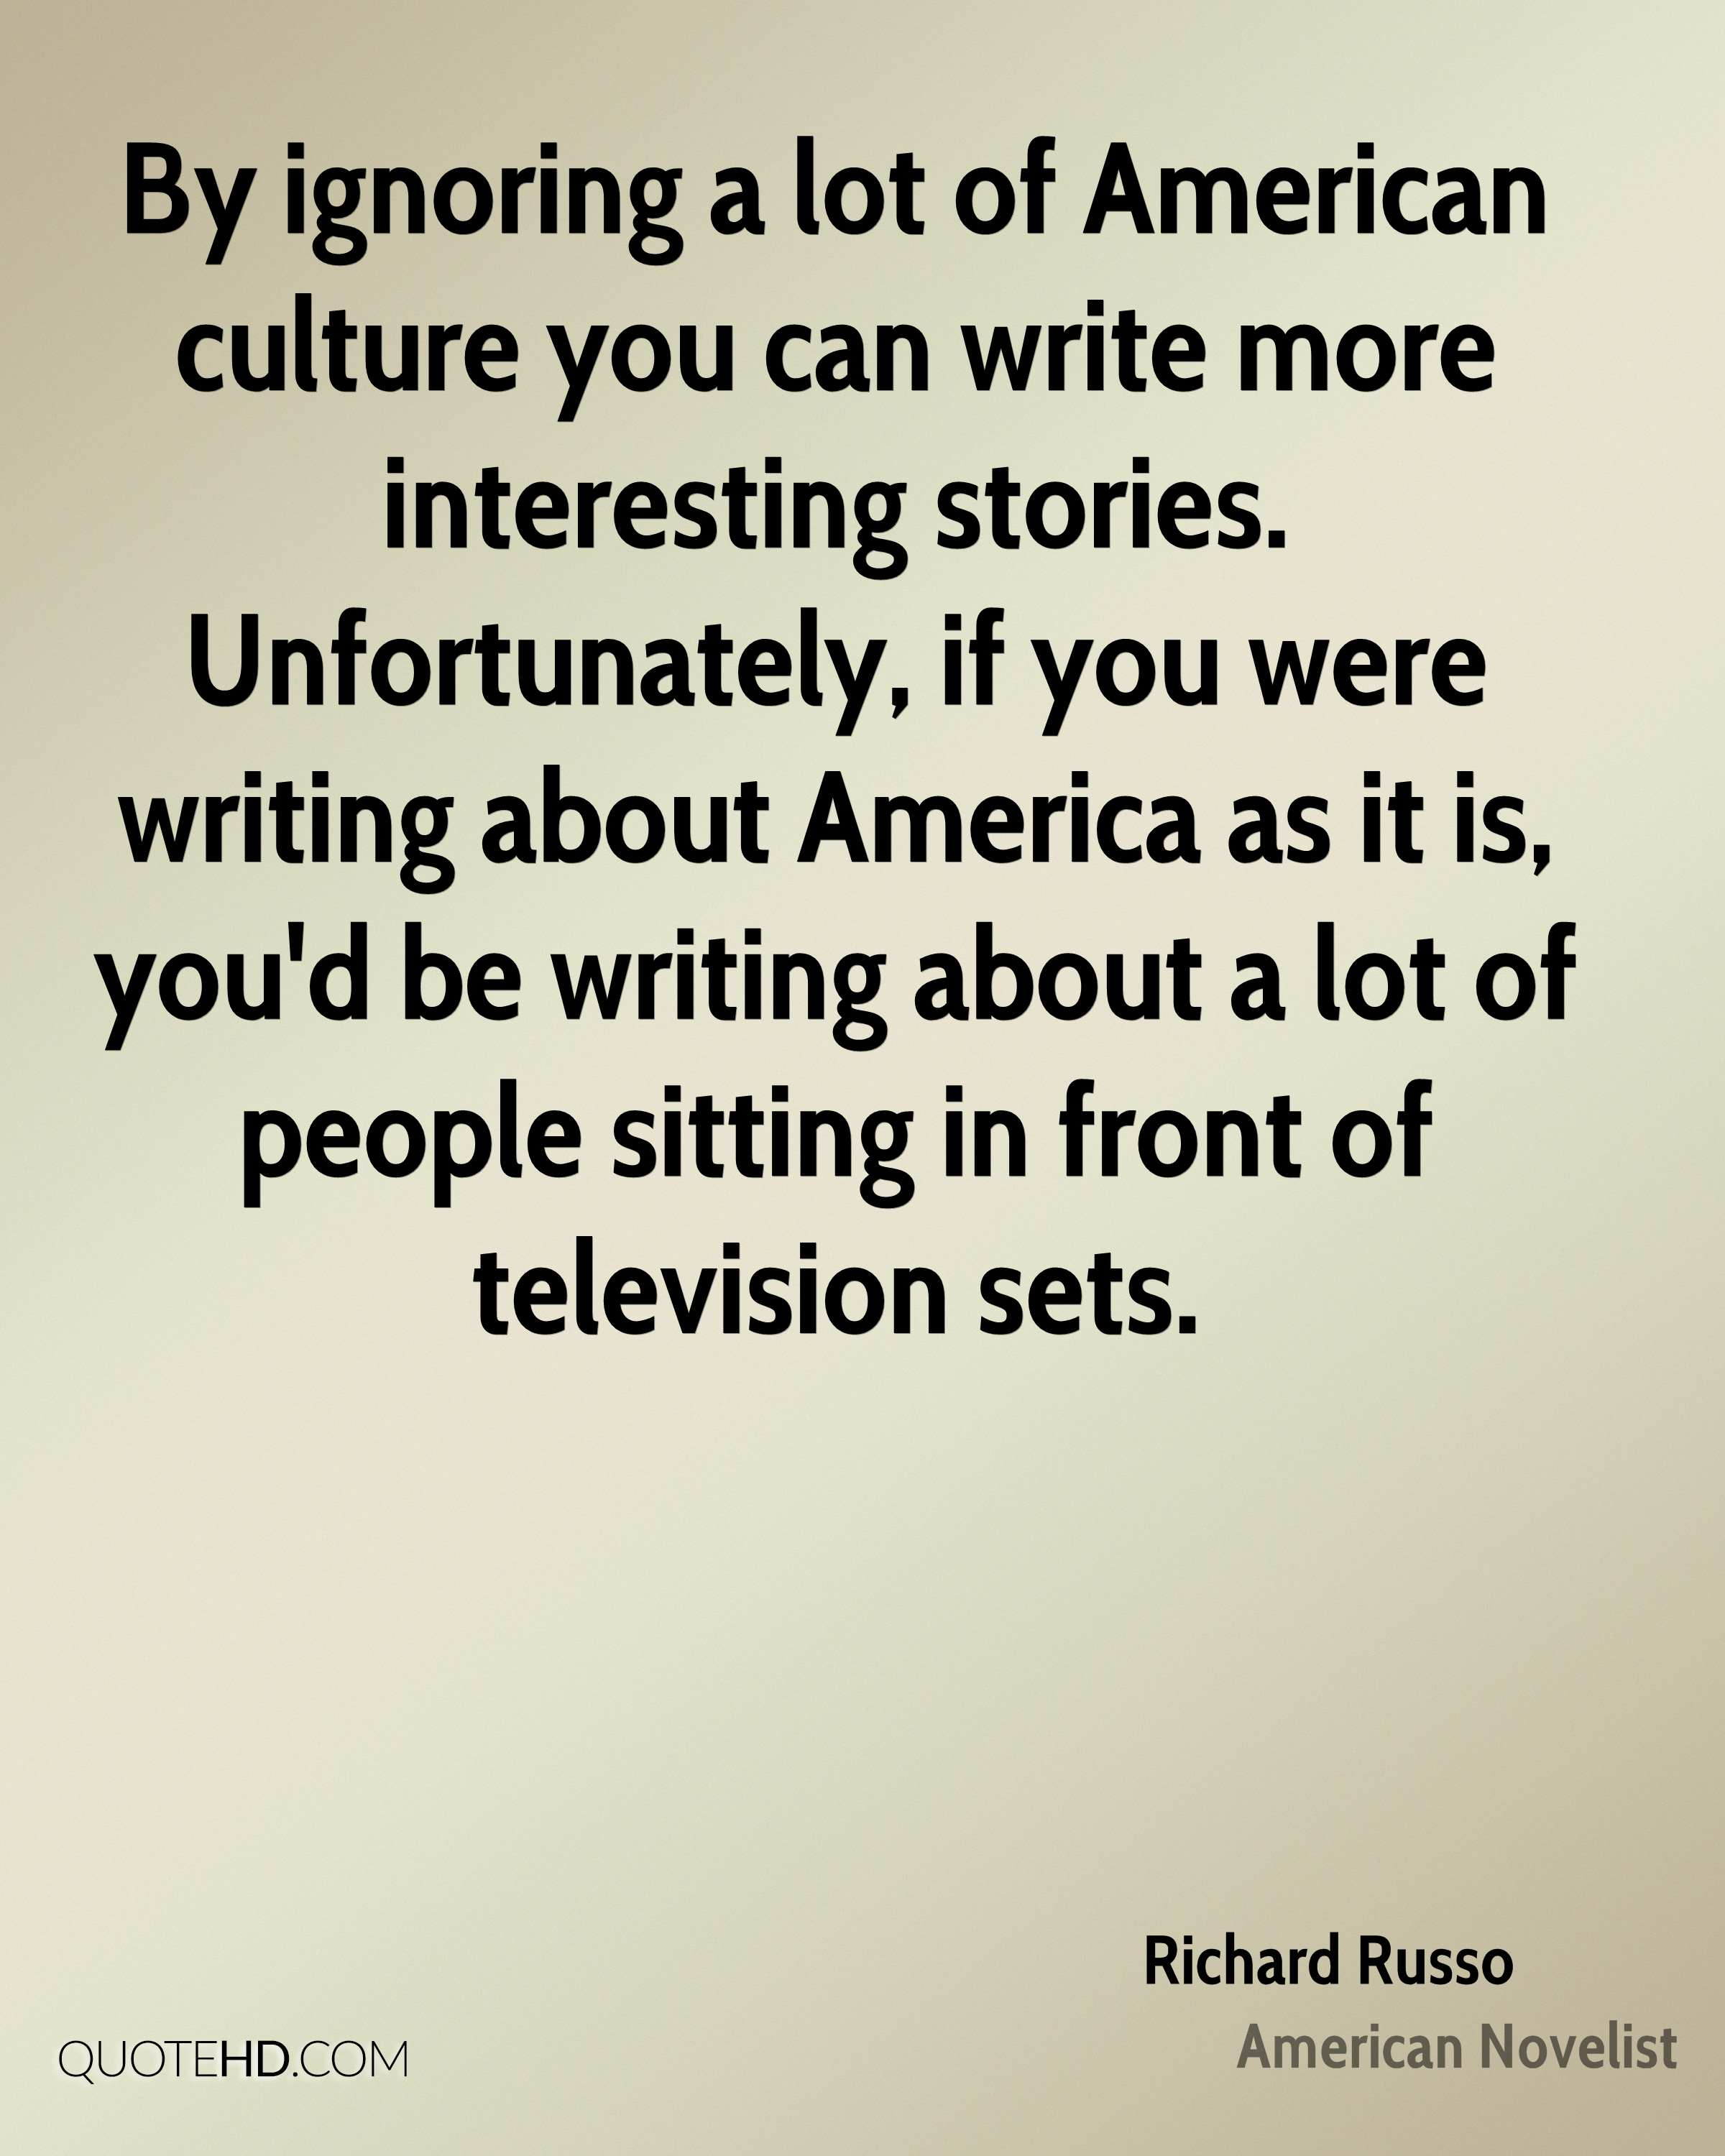 By ignoring a lot of American culture you can write more interesting stories. Unfortunately, if you were writing about America as it is, you'd be writing about a lot of people sitting in front of television sets.